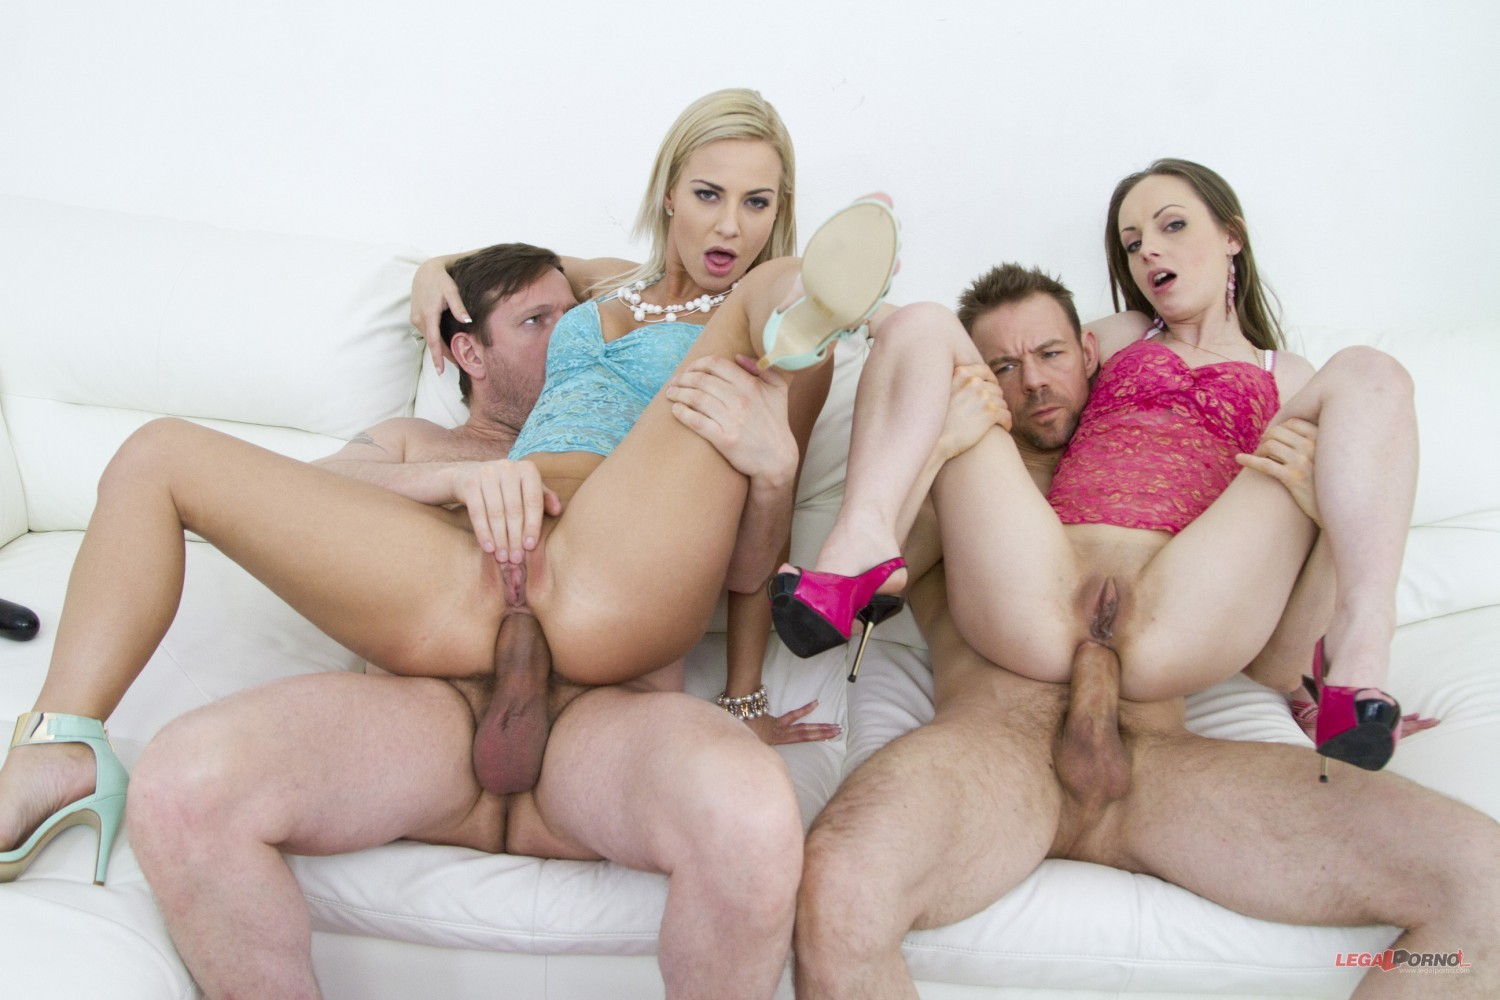 sexy-gonzo-sister-slut-college-sex-parties-free